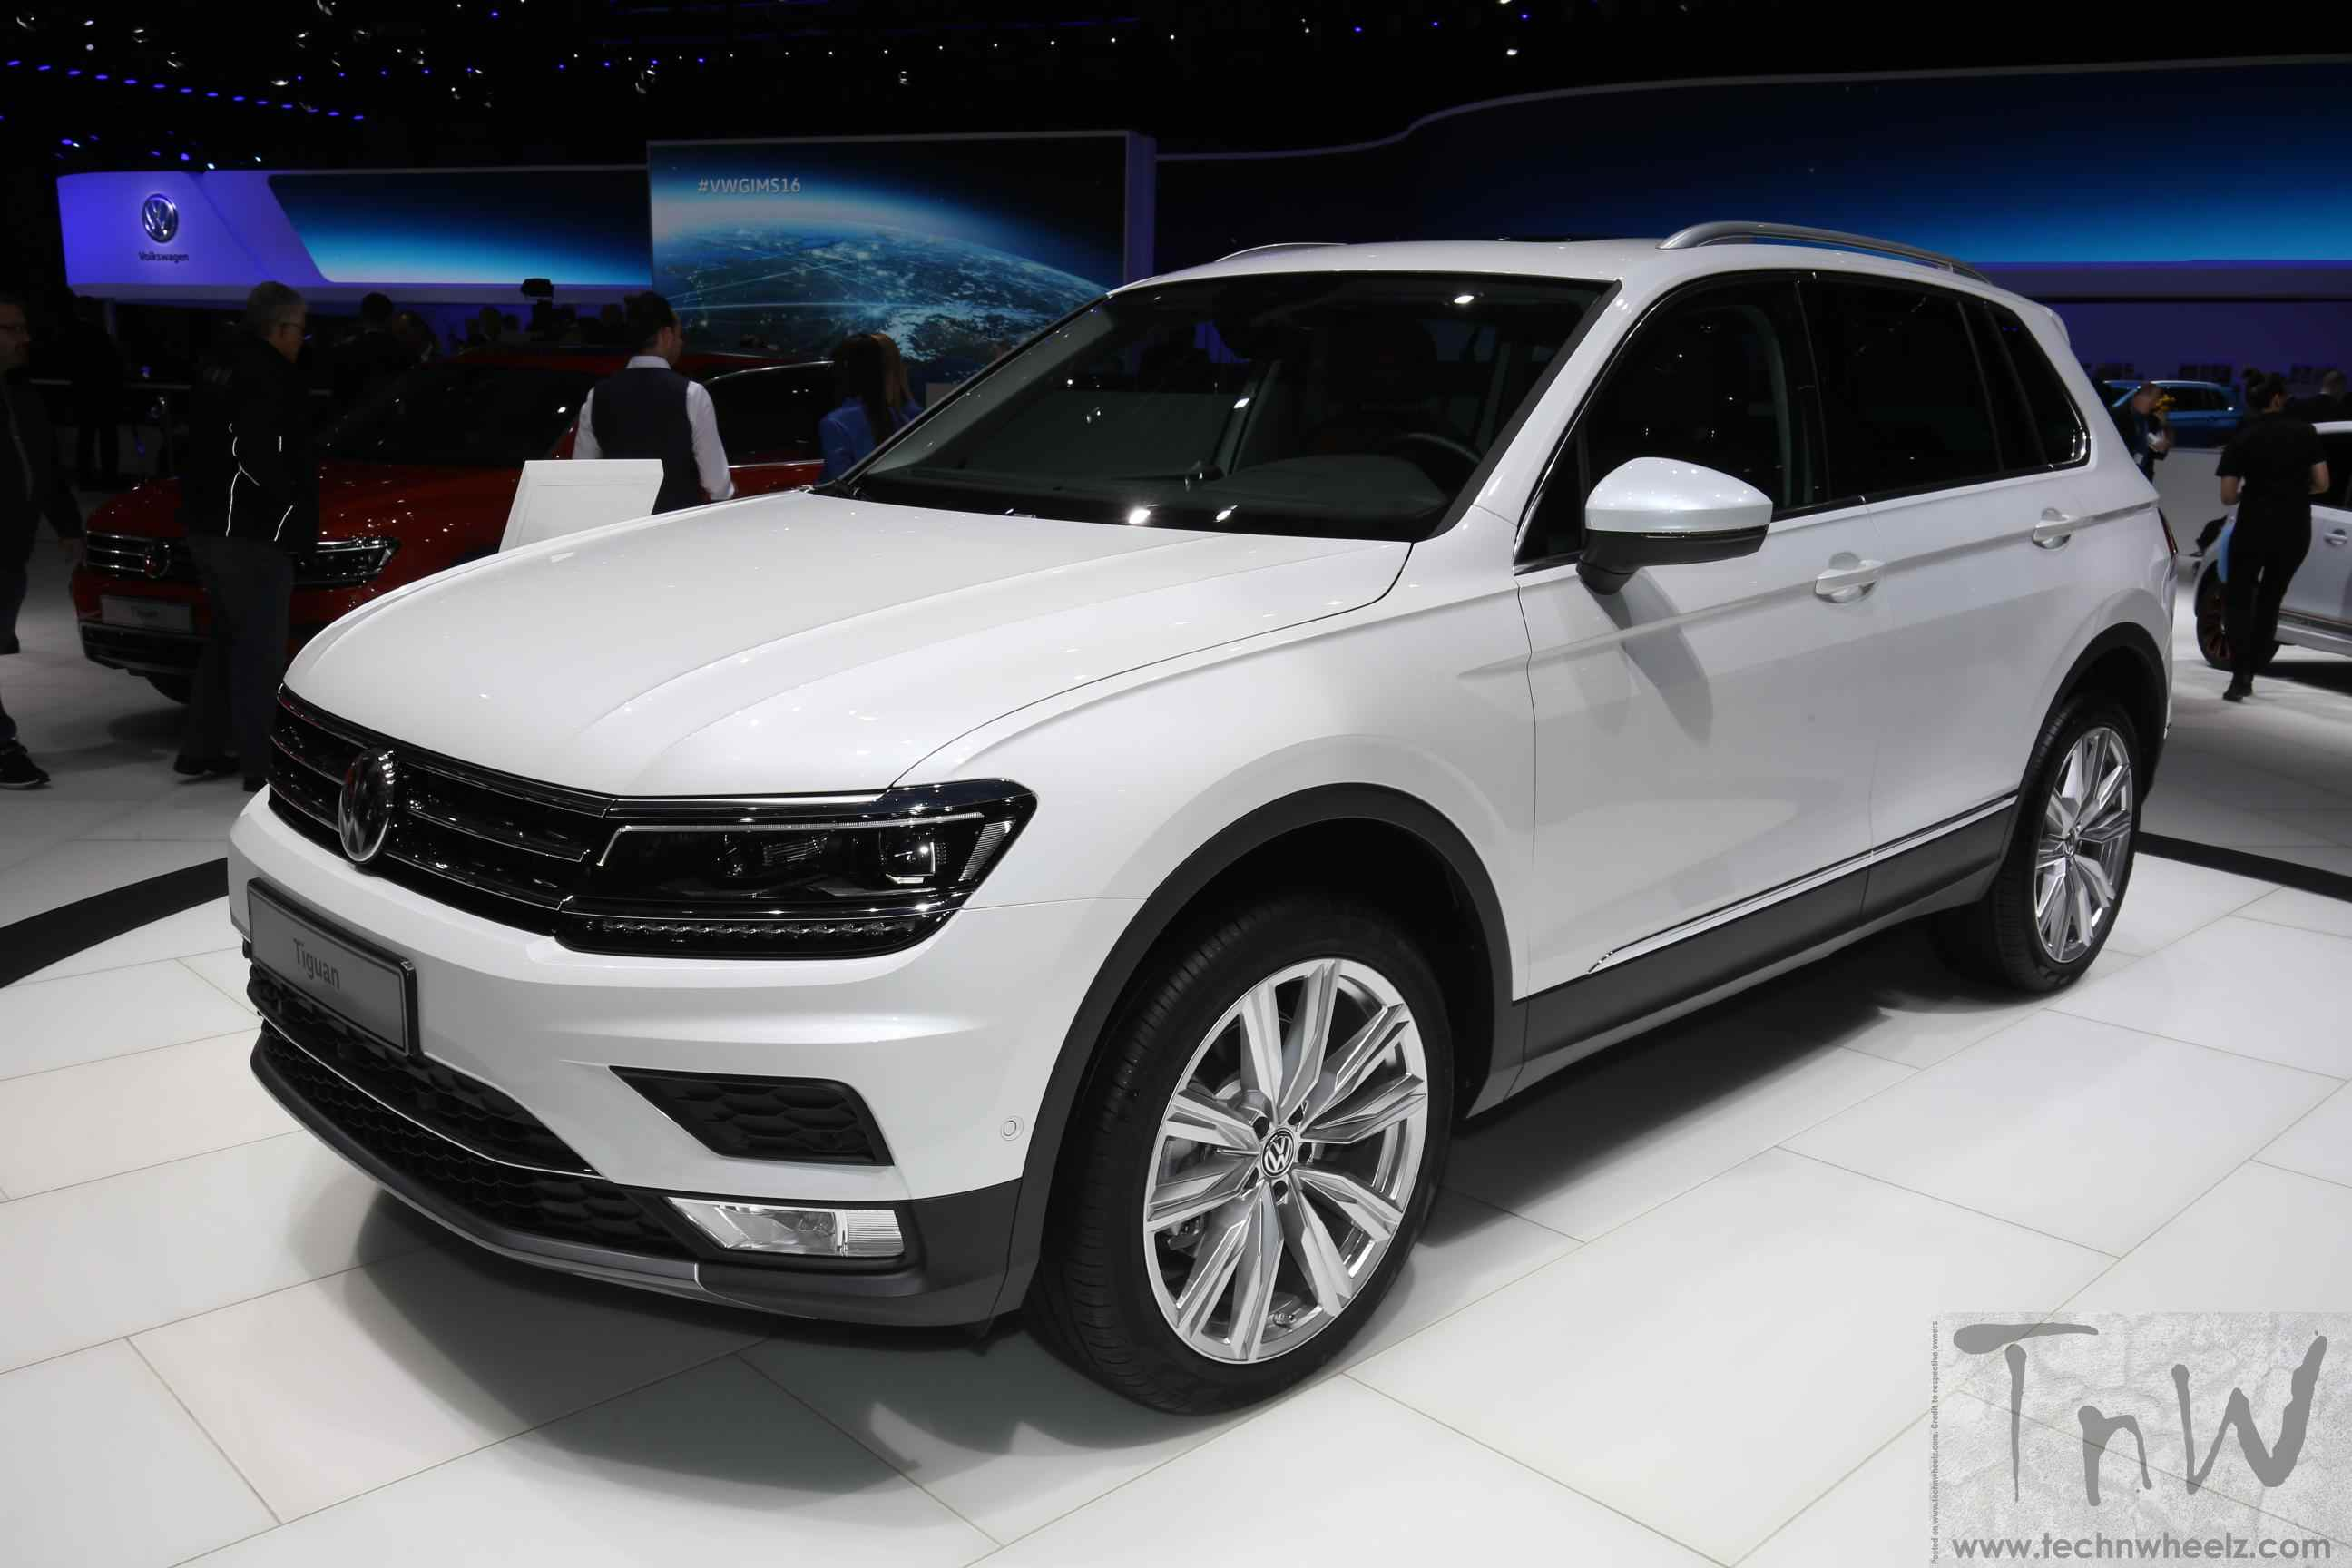 image gallery volkswagen 2016 geneva international motor show tech 39 n wheelz. Black Bedroom Furniture Sets. Home Design Ideas